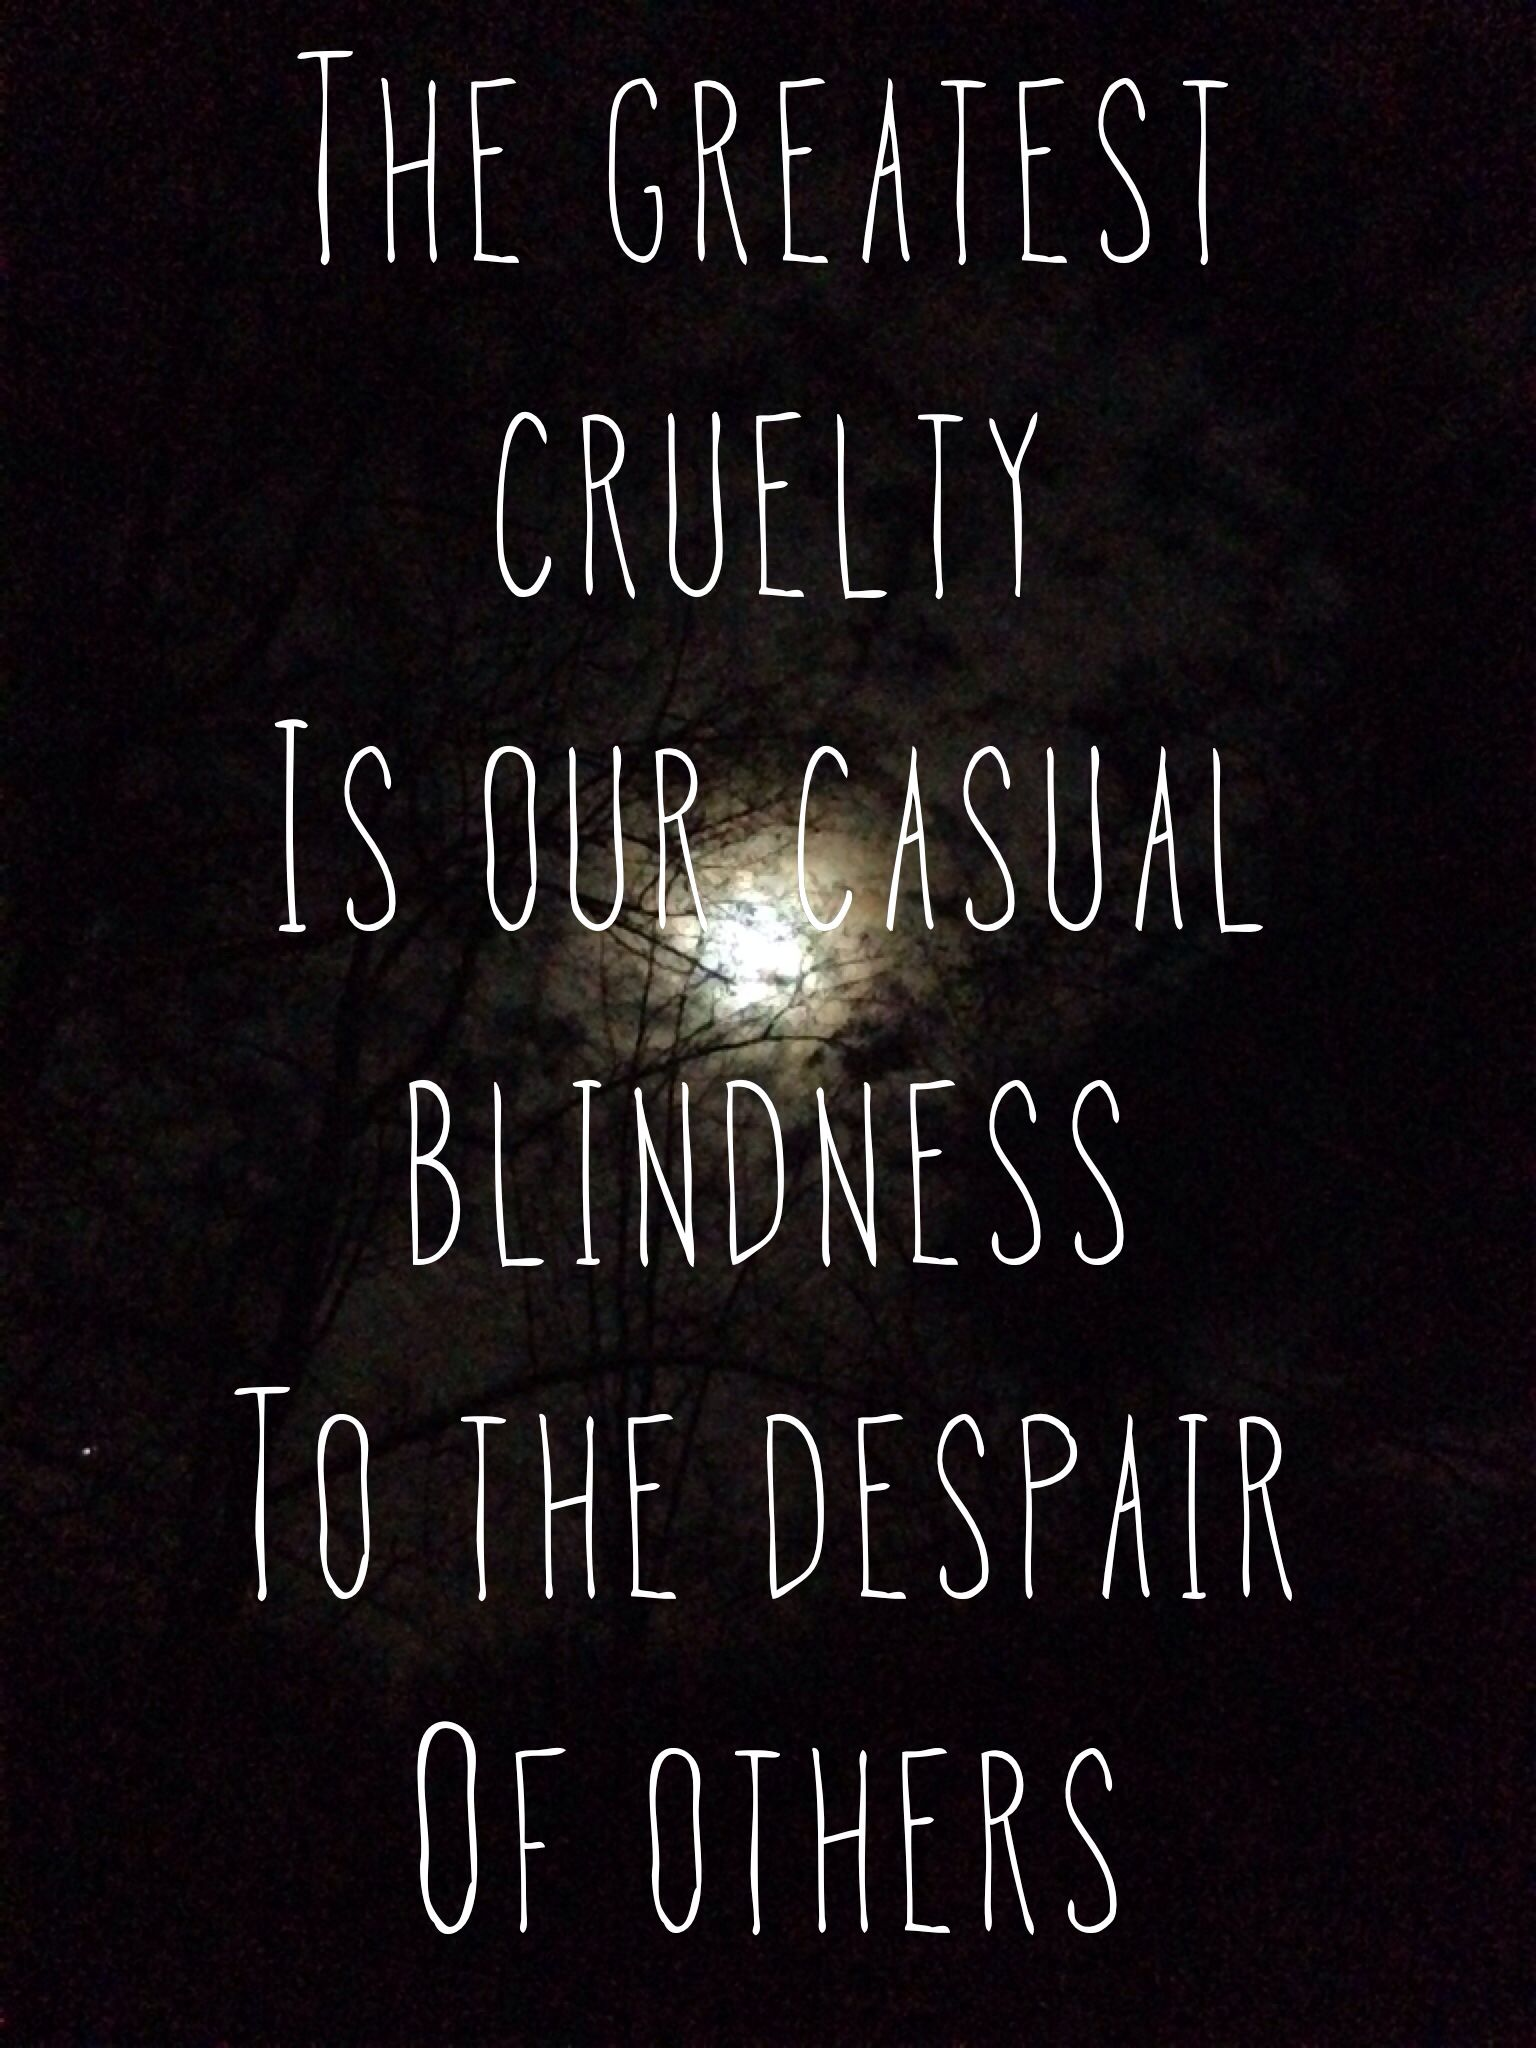 The Greatest Cruelty Is Our Casual Blindness To The Despair Of